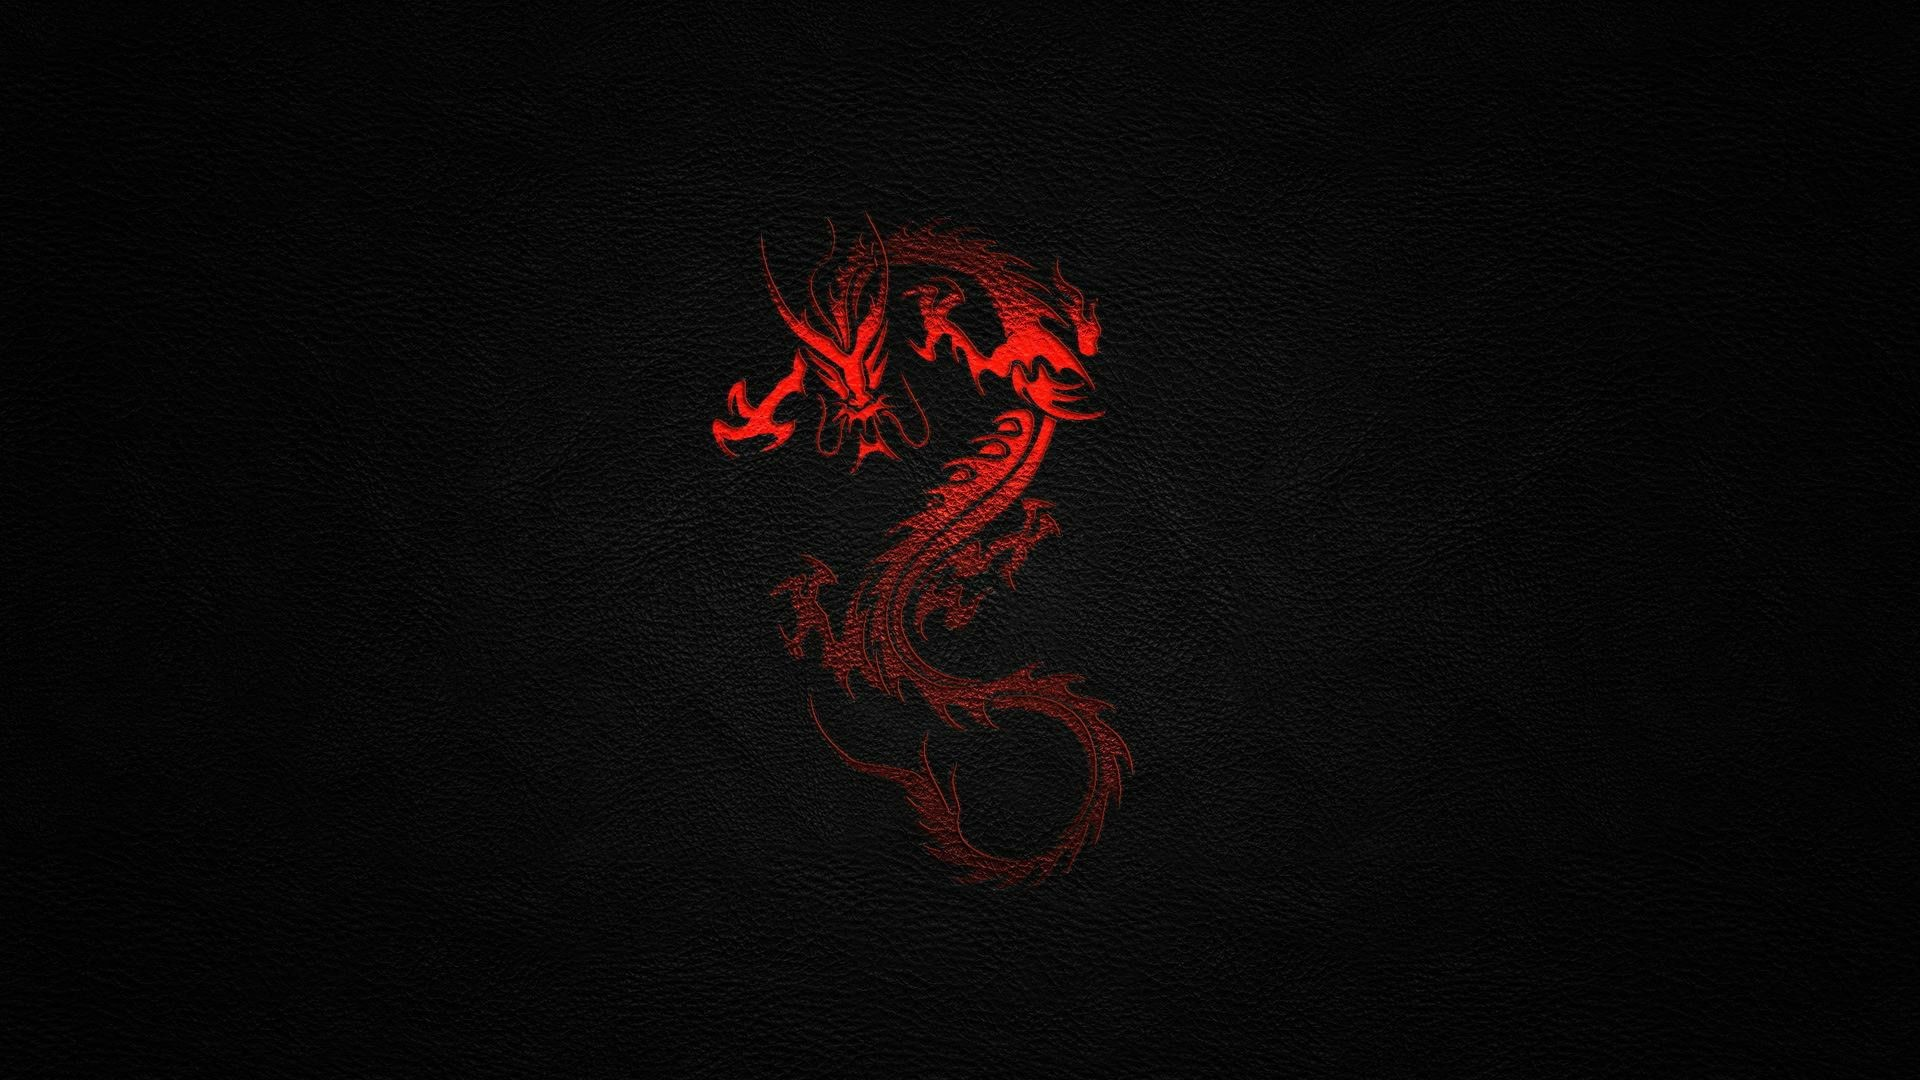 1920x1080 Black red dragon desktop wallpaper